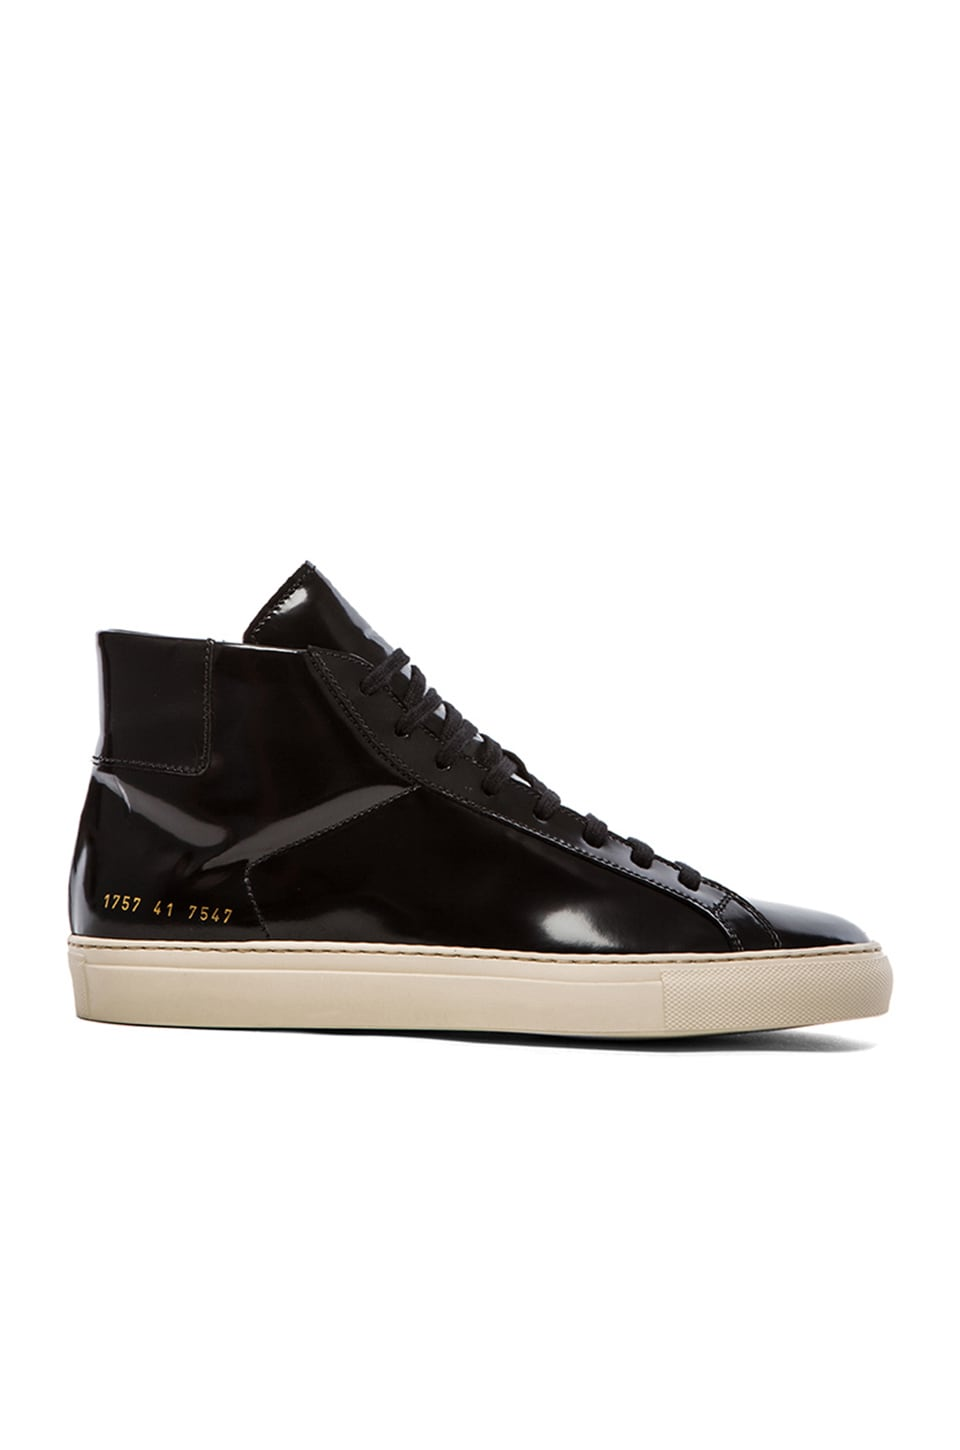 Common Projects Original Vintage High in Black